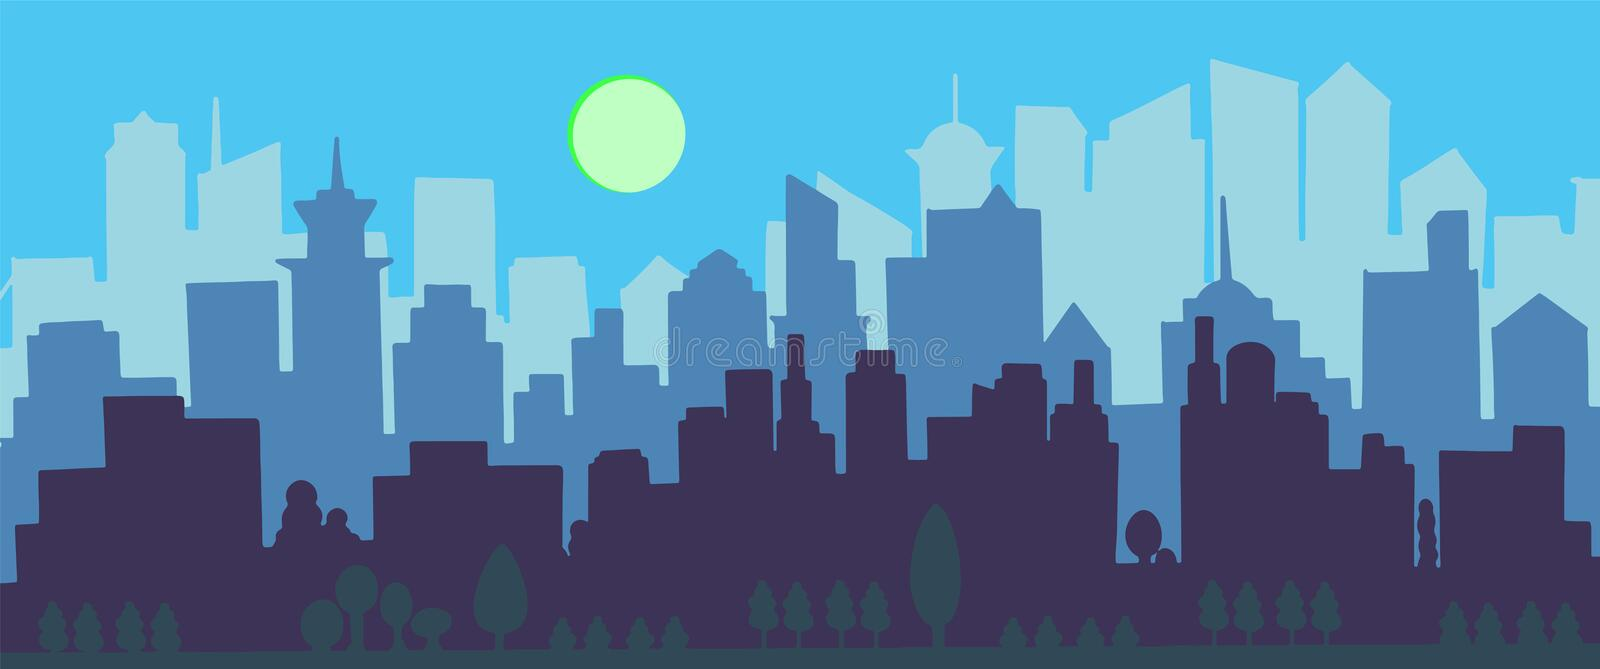 City skyline vector illustration. Urban landscape. Blue city silhouette. Cityscape in flat style. Modern city landscape. vector illustration